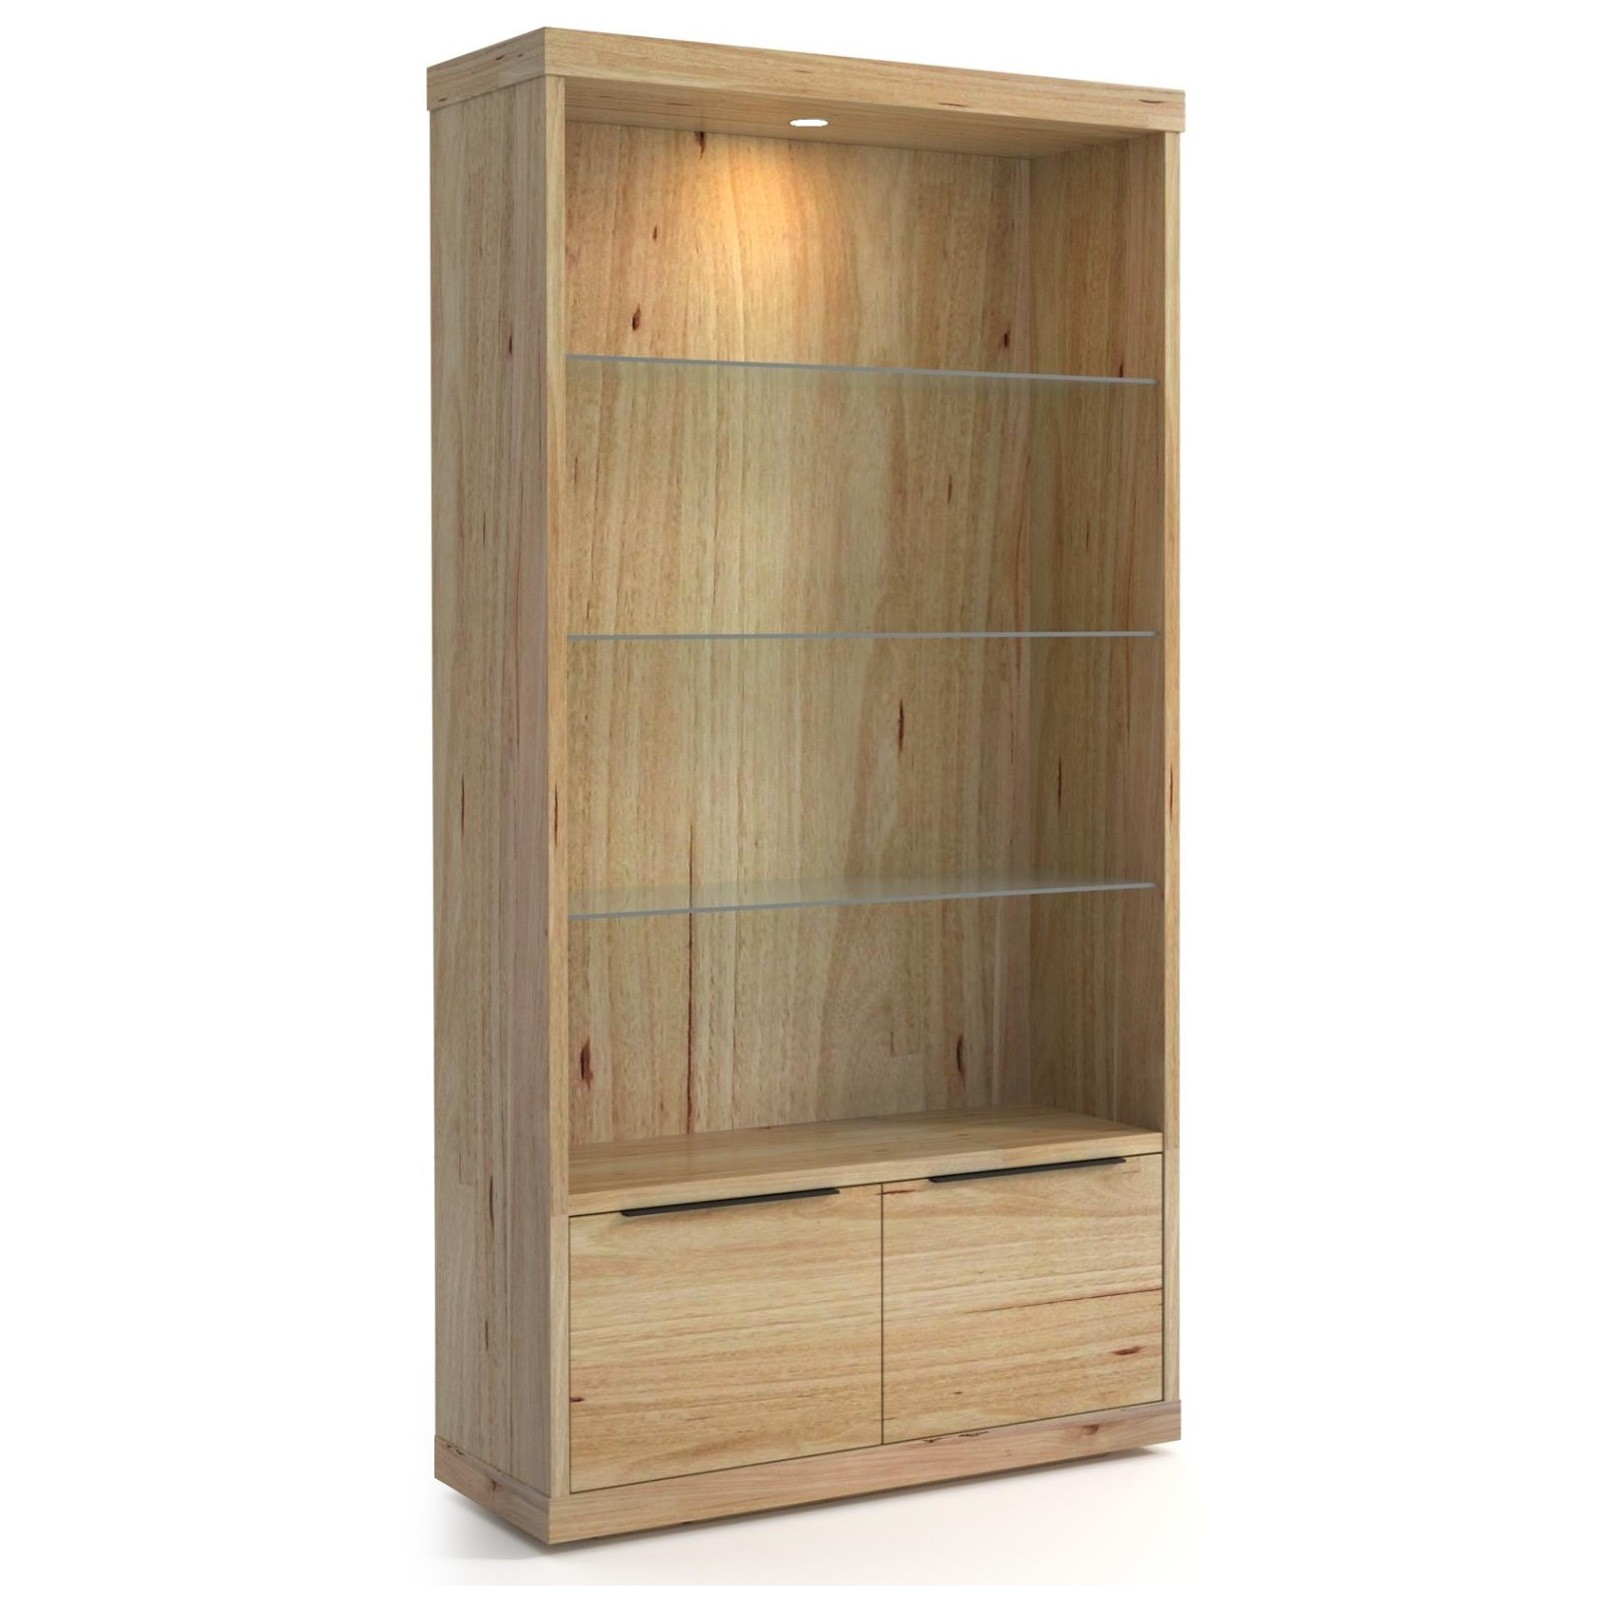 Nuoro Messmate Timber Display Cabinet, Double